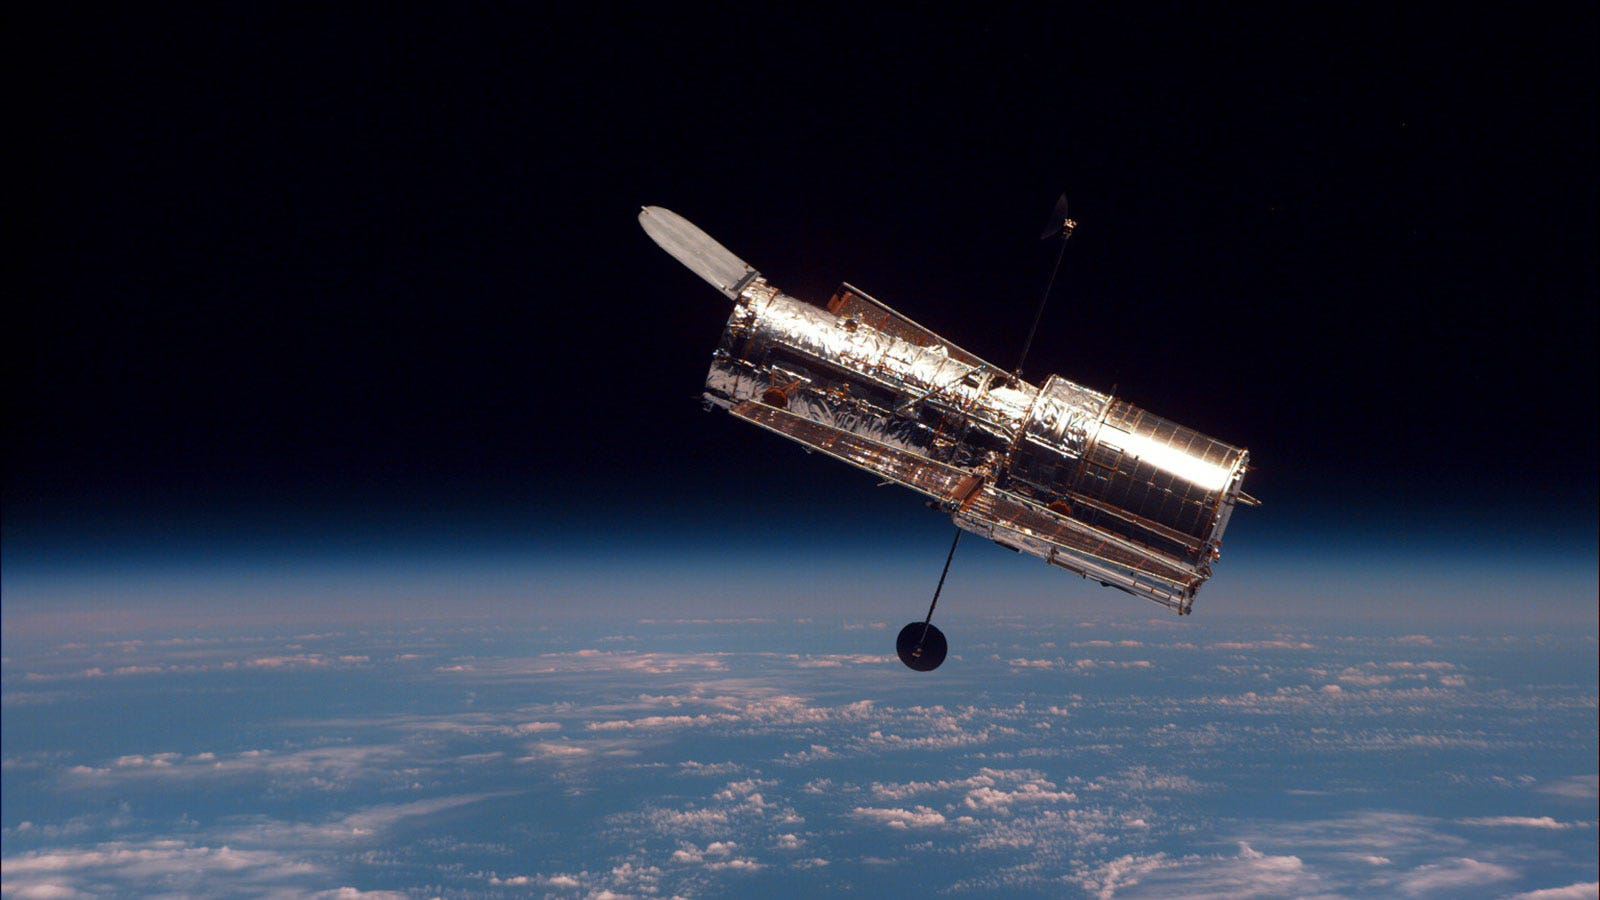 A photograph showing the Hubble Space Telescope floating in Earth orbit.